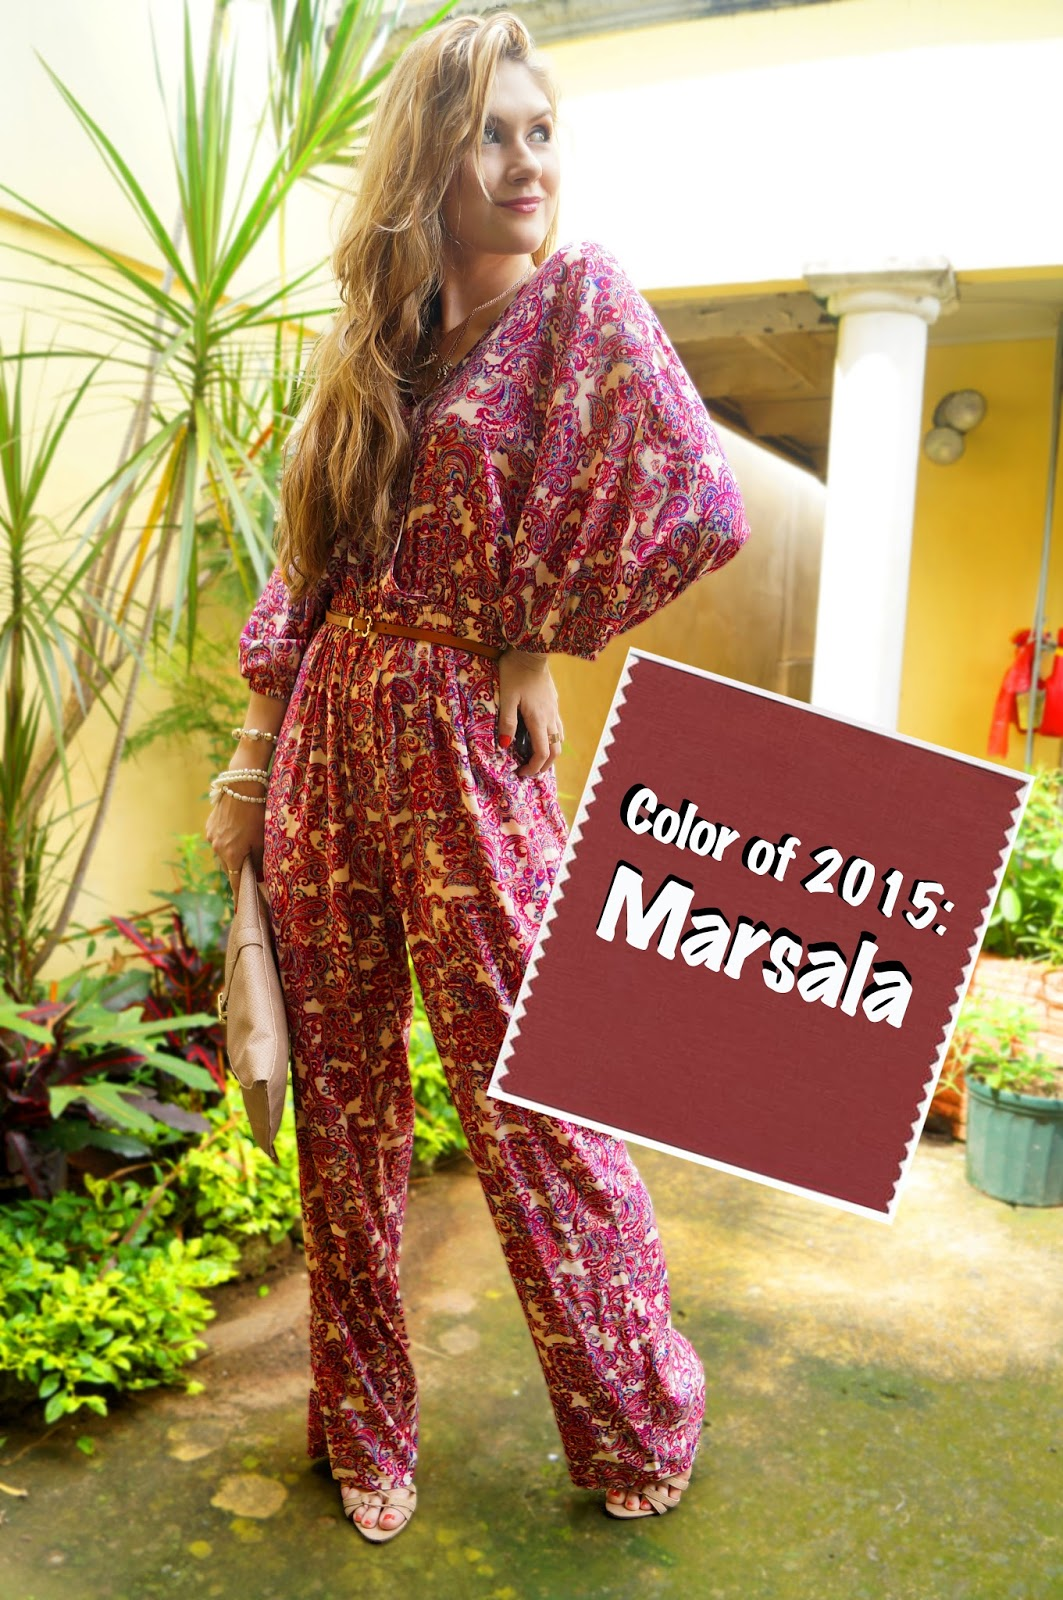 The Official Color of 2015 is Marsala. Click through for tips on how to wear it this season!